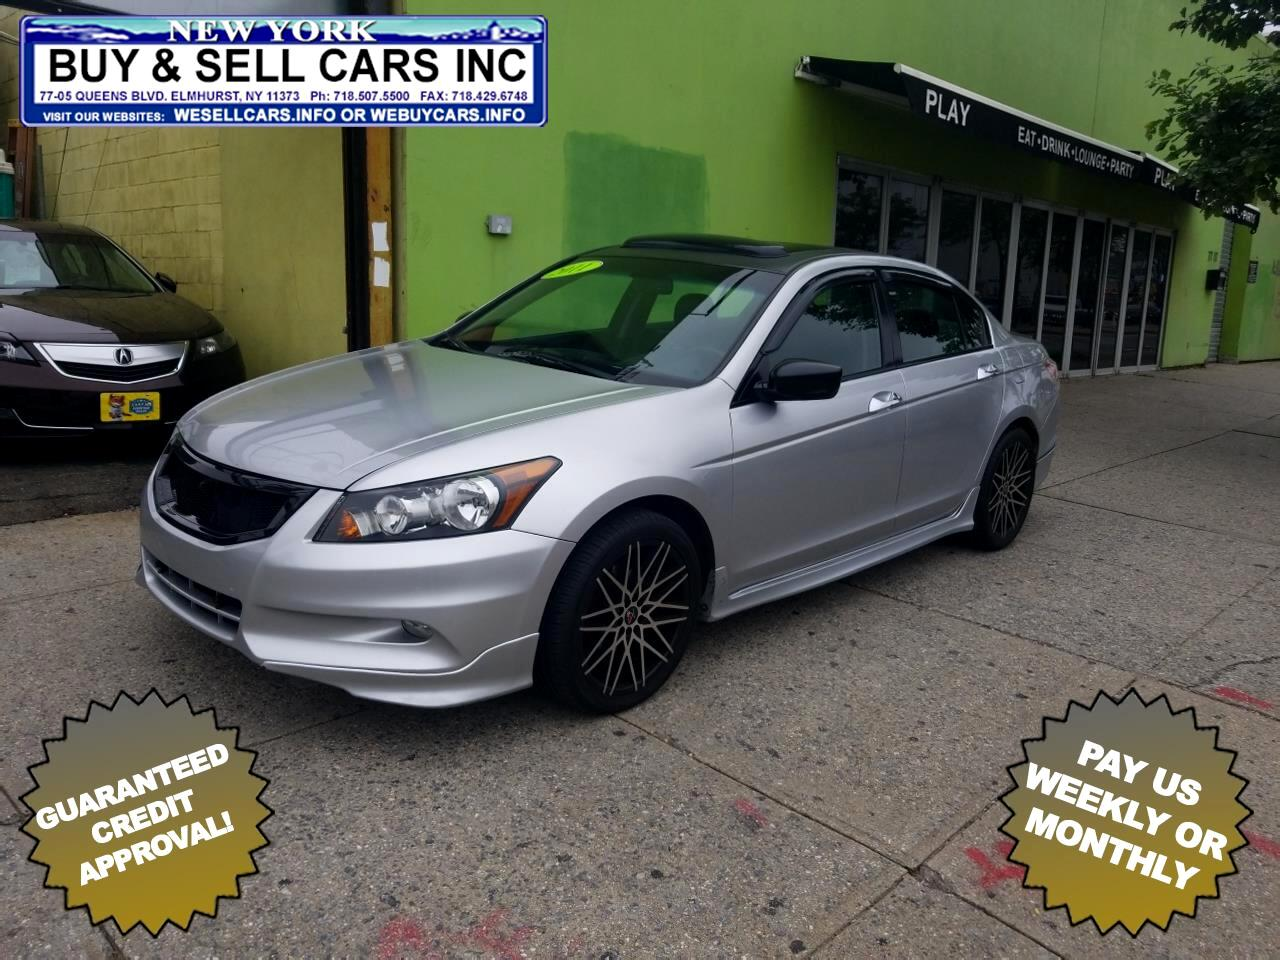 2011 Honda Accord For Sale >> Used 2011 Honda Accord Sdn For Sale In Elmhurst Ny 11373